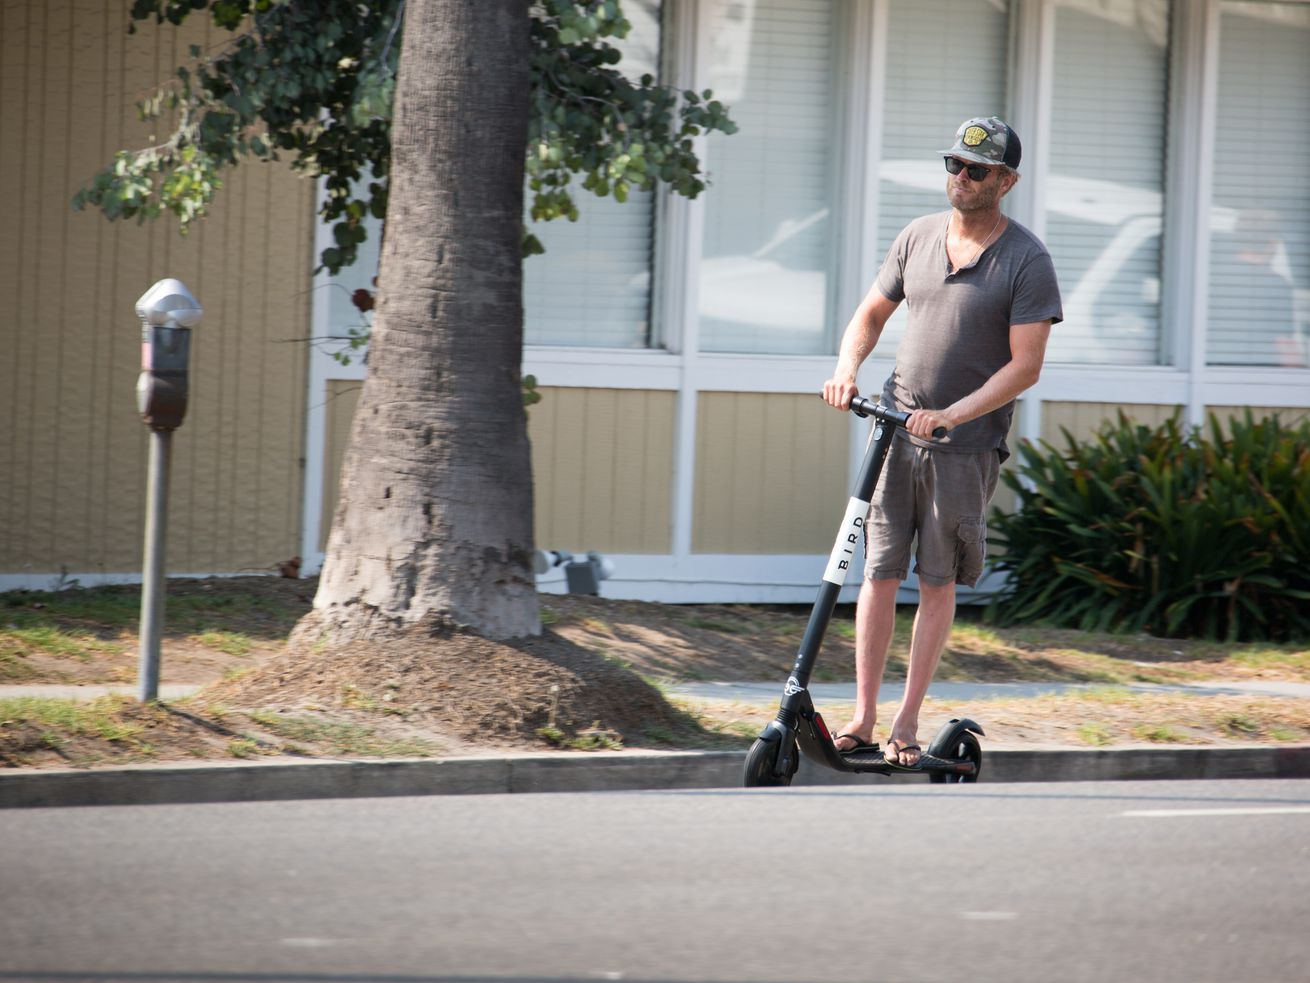 LA's transportation department is set to begin issuing 12-month permits next week to dockless companies.